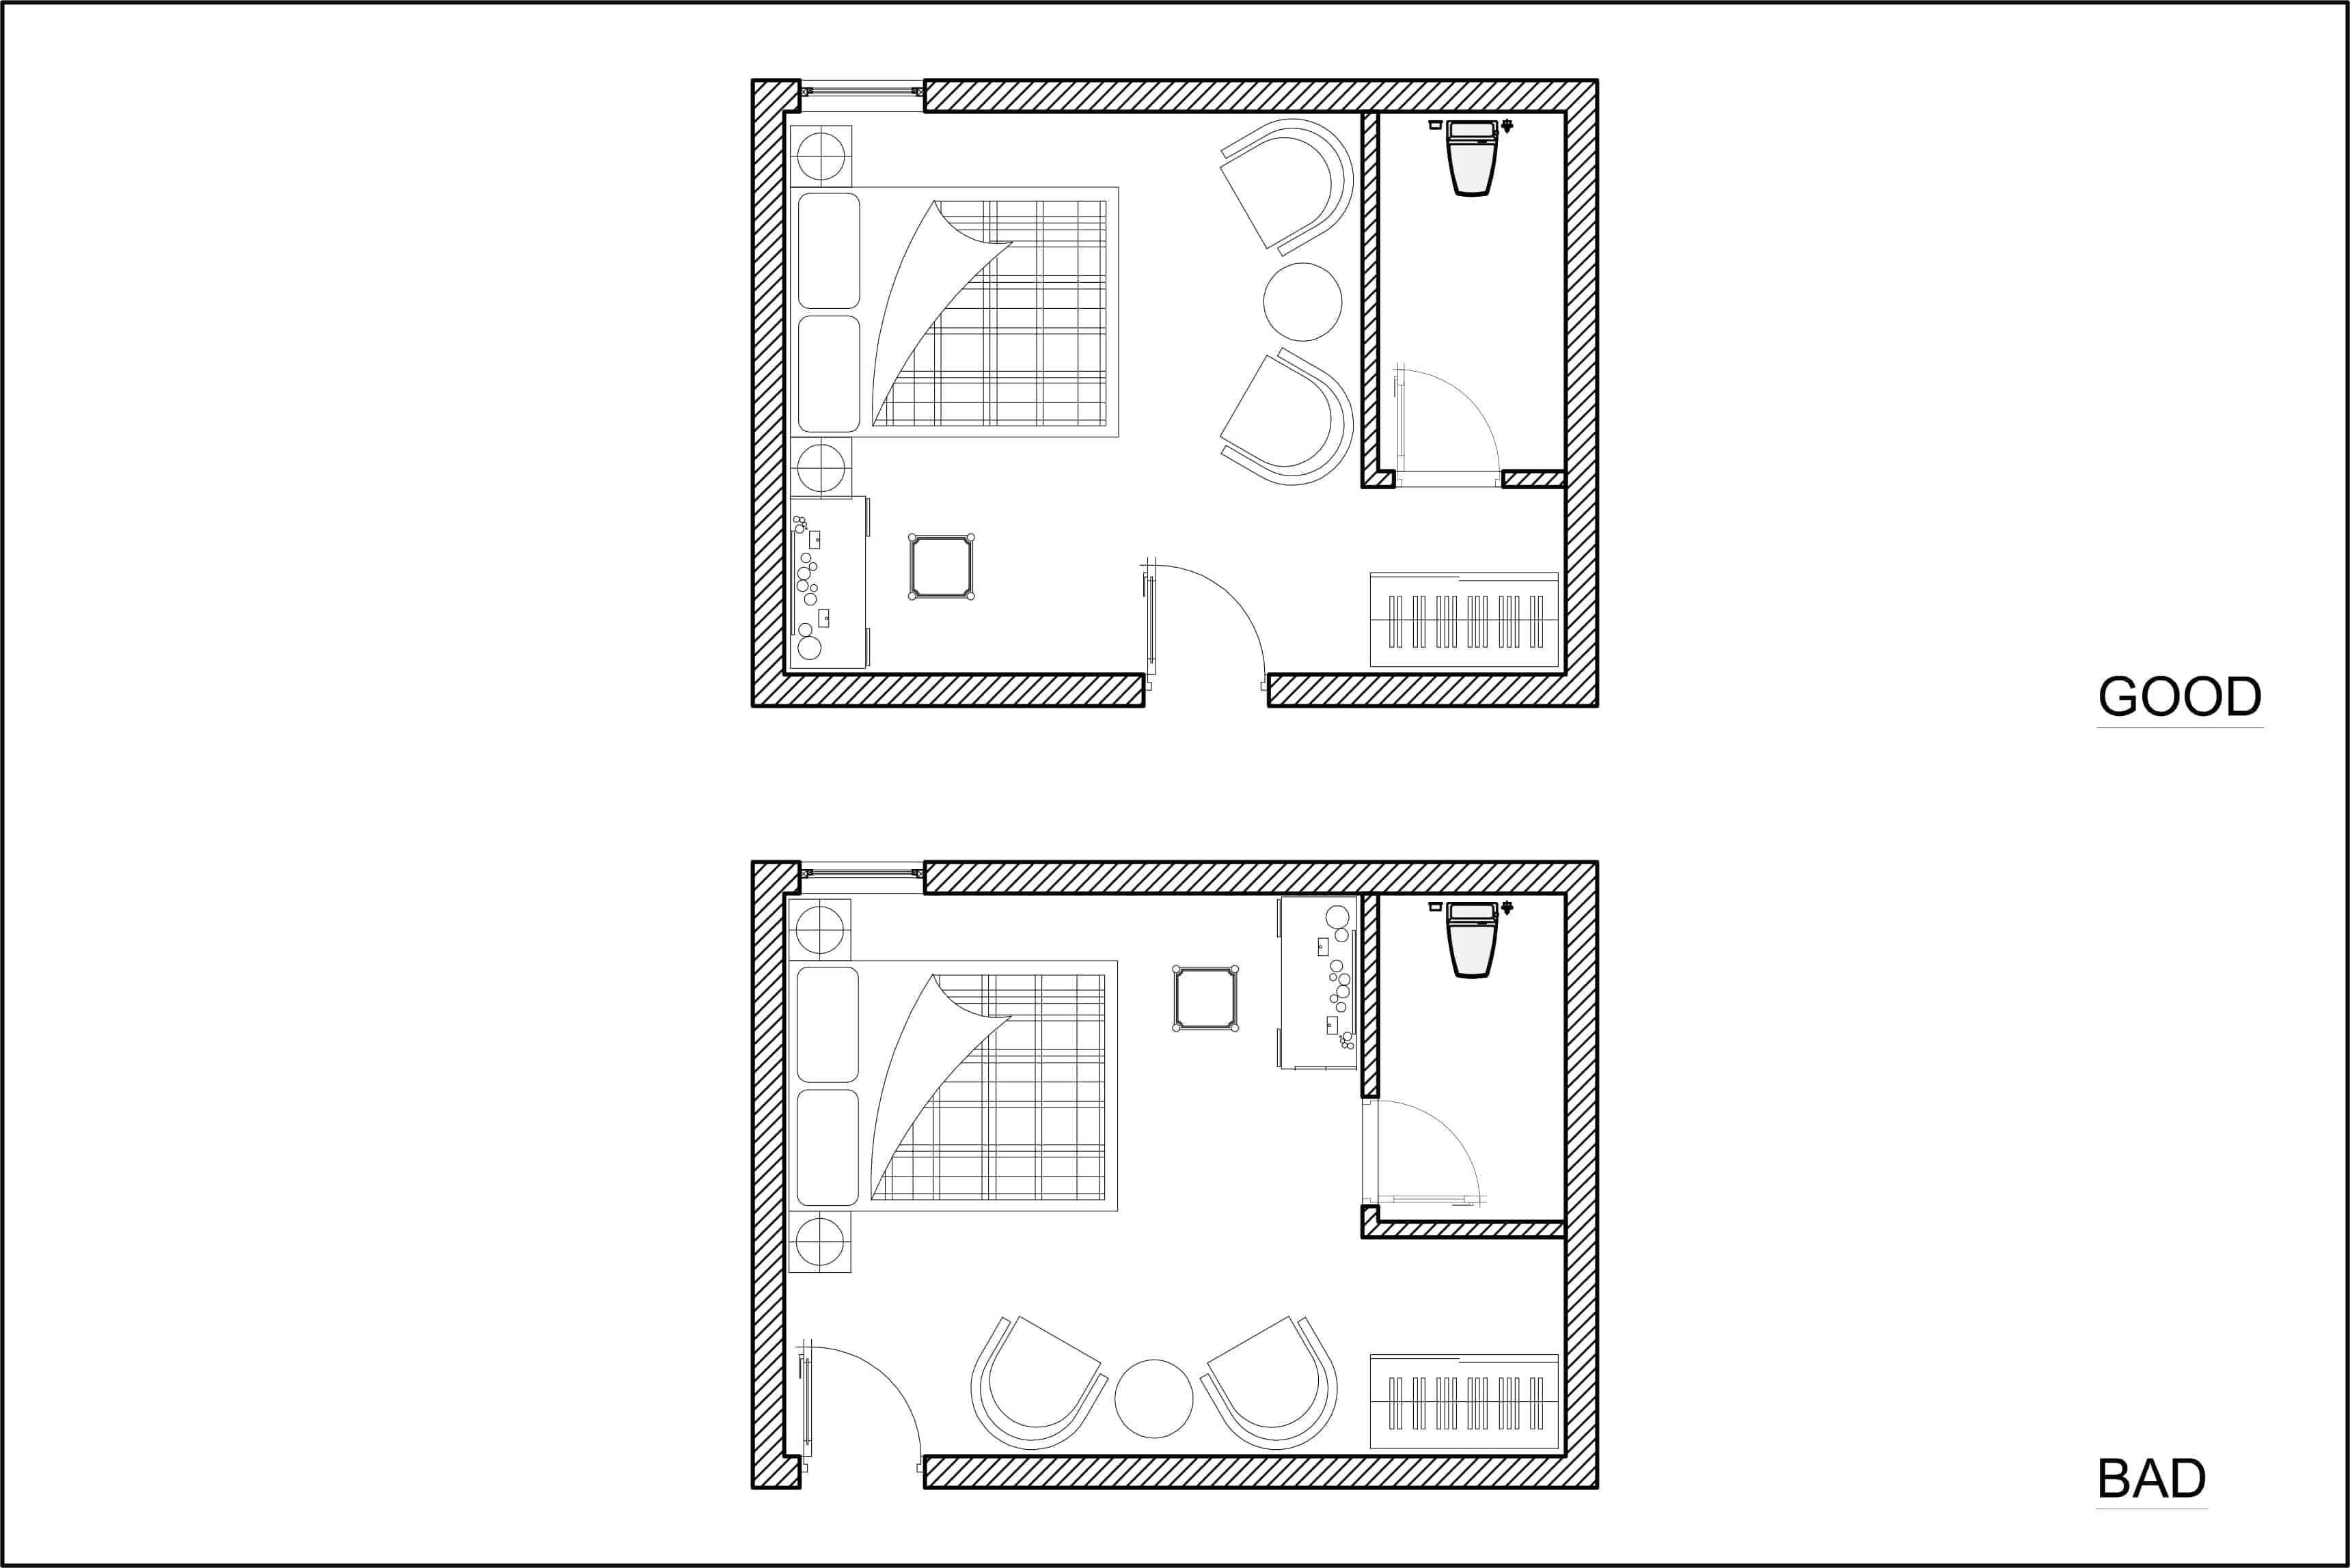 Diagram illustrating good and bad Feng Shui bedroom layout